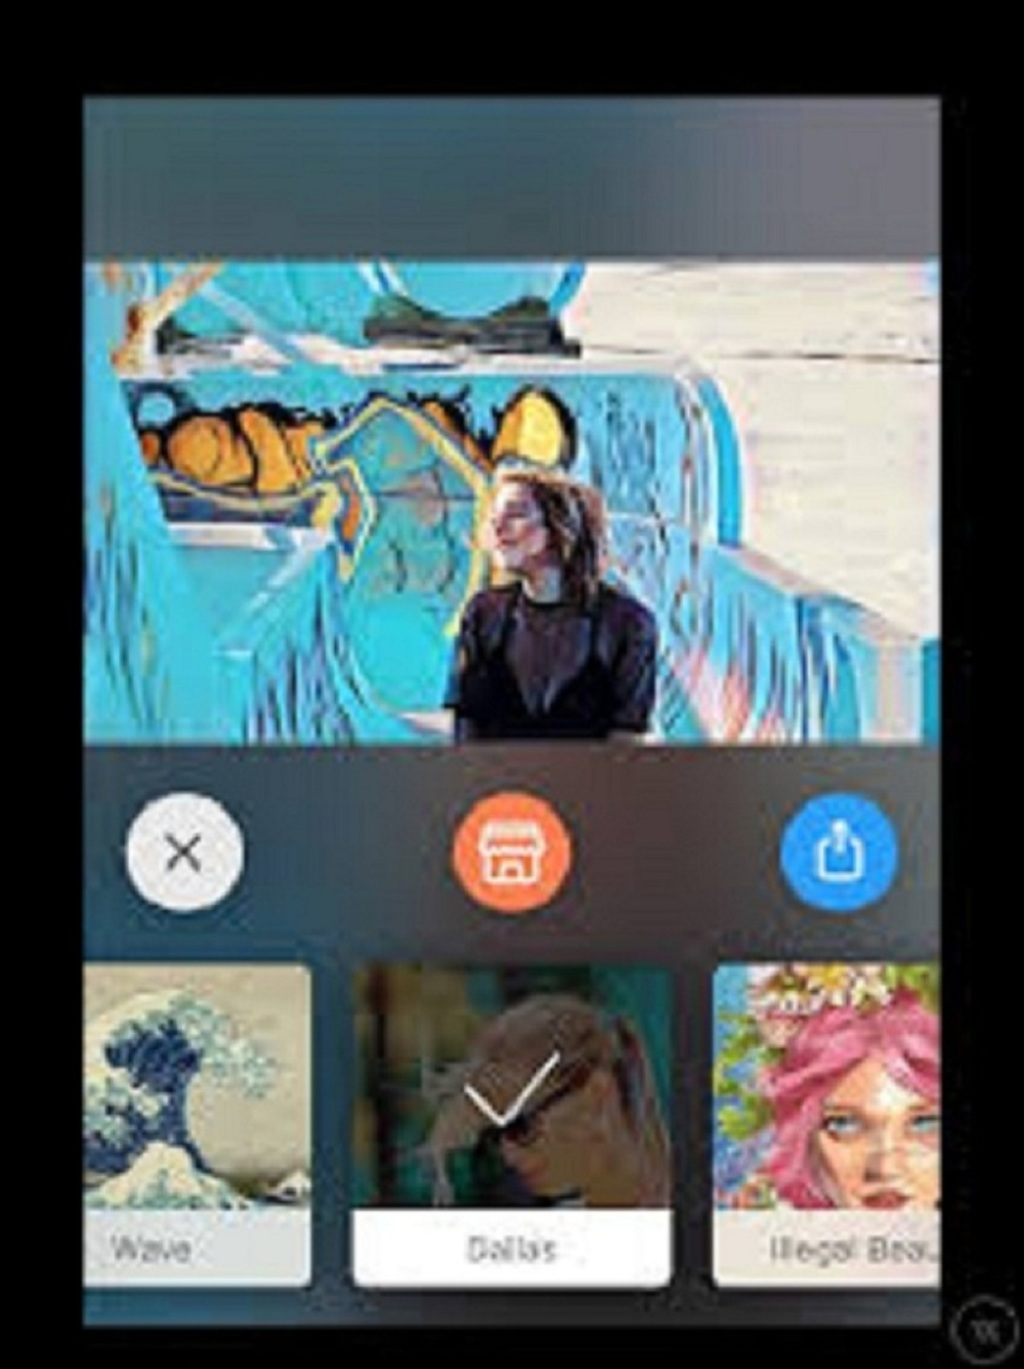 Best iOS Photo Editing Apps For Photographers & Artists                                                                                  Now... via Alice John